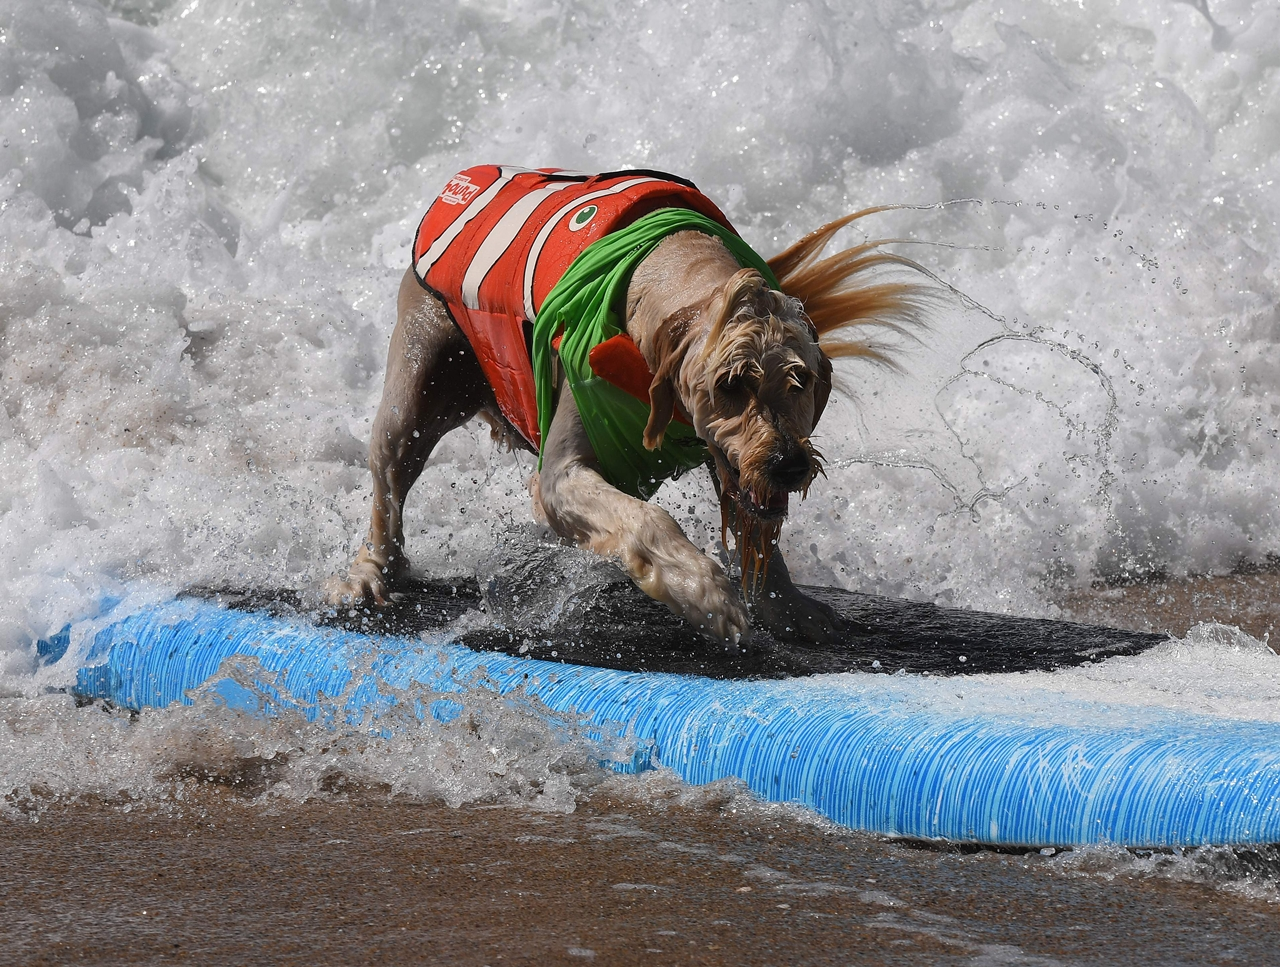 the-annual-competition-dog-surfing-in-california-17